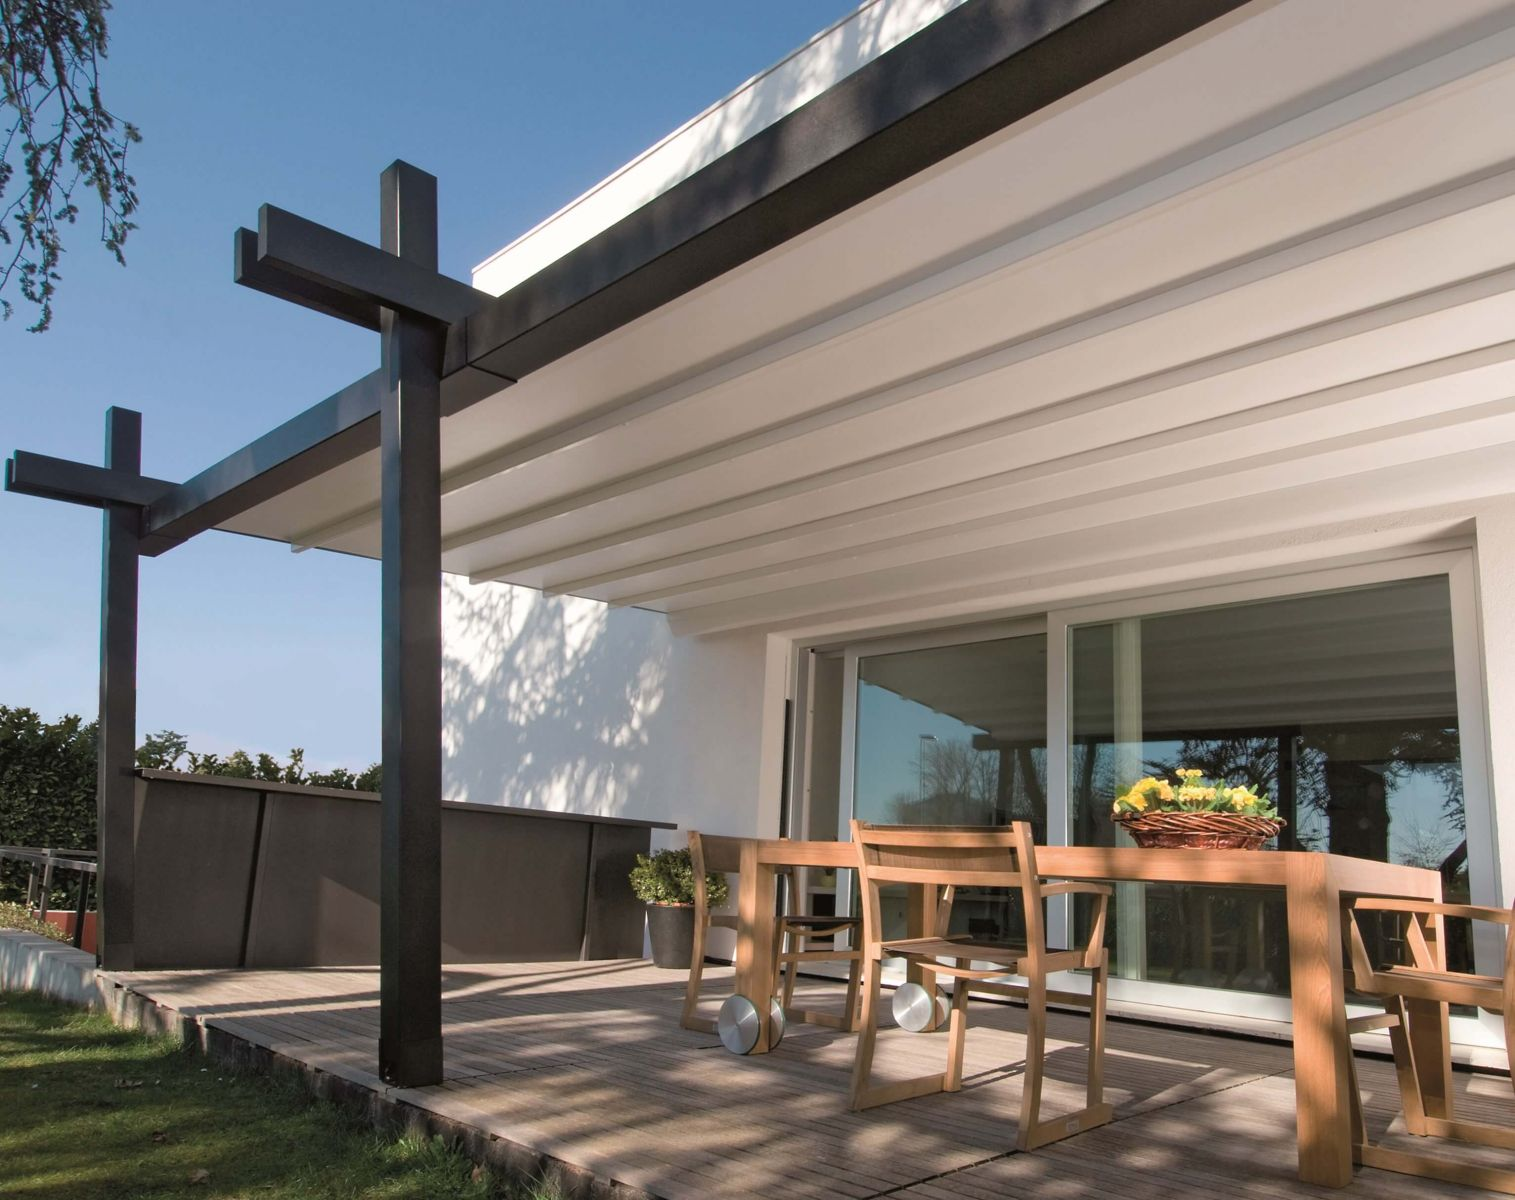 Pergola System The Stil Pergola Awning System Canopies Sunair